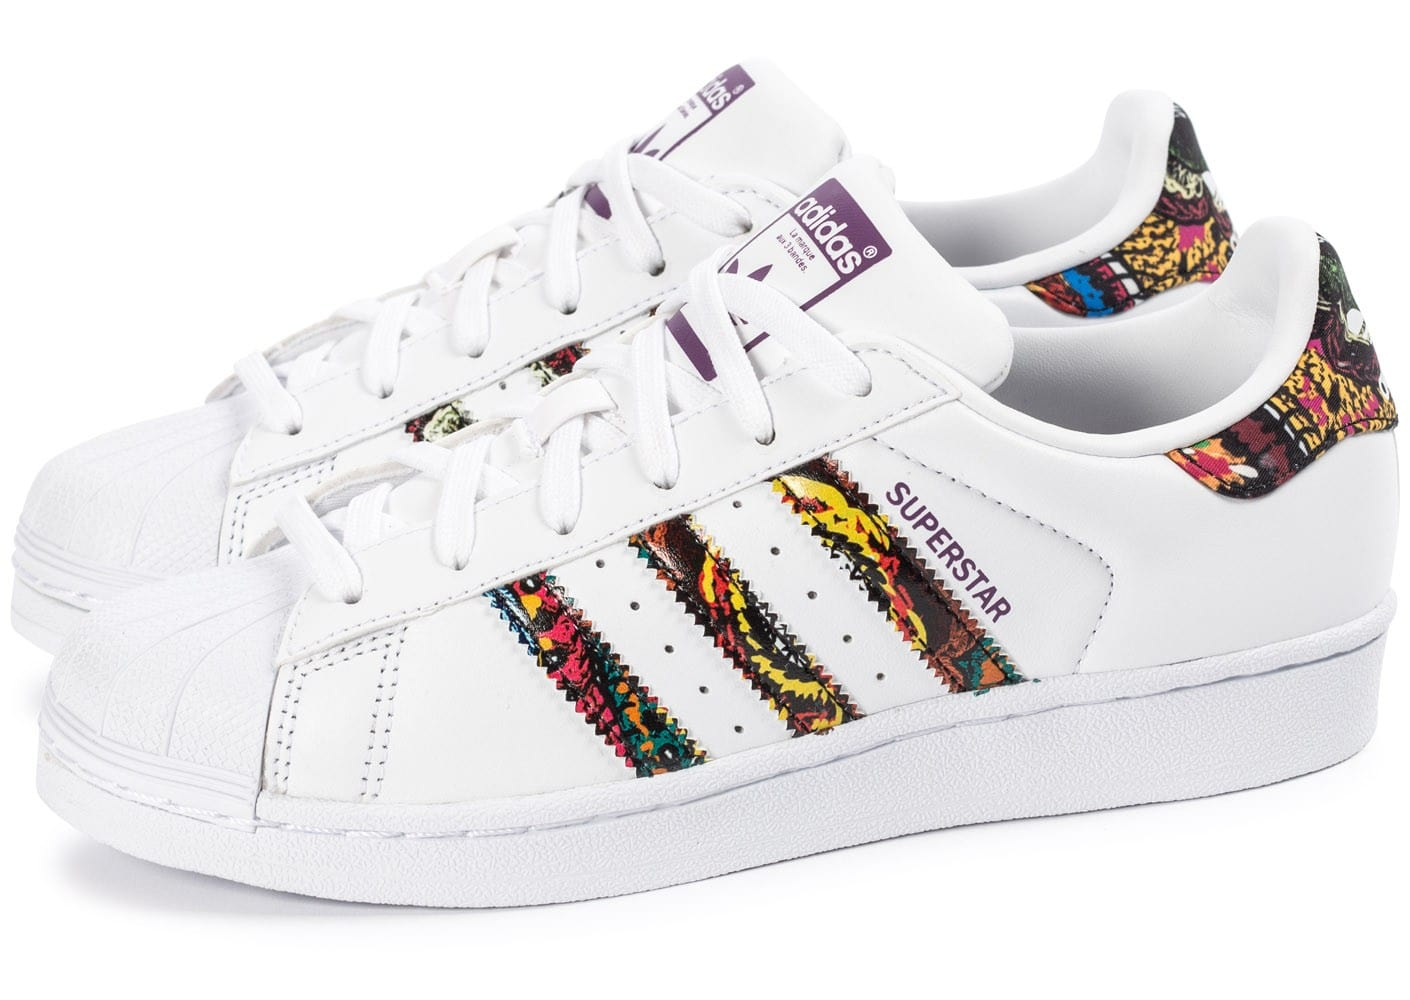 adidas blanches, adidas originals x farm superstar baskets